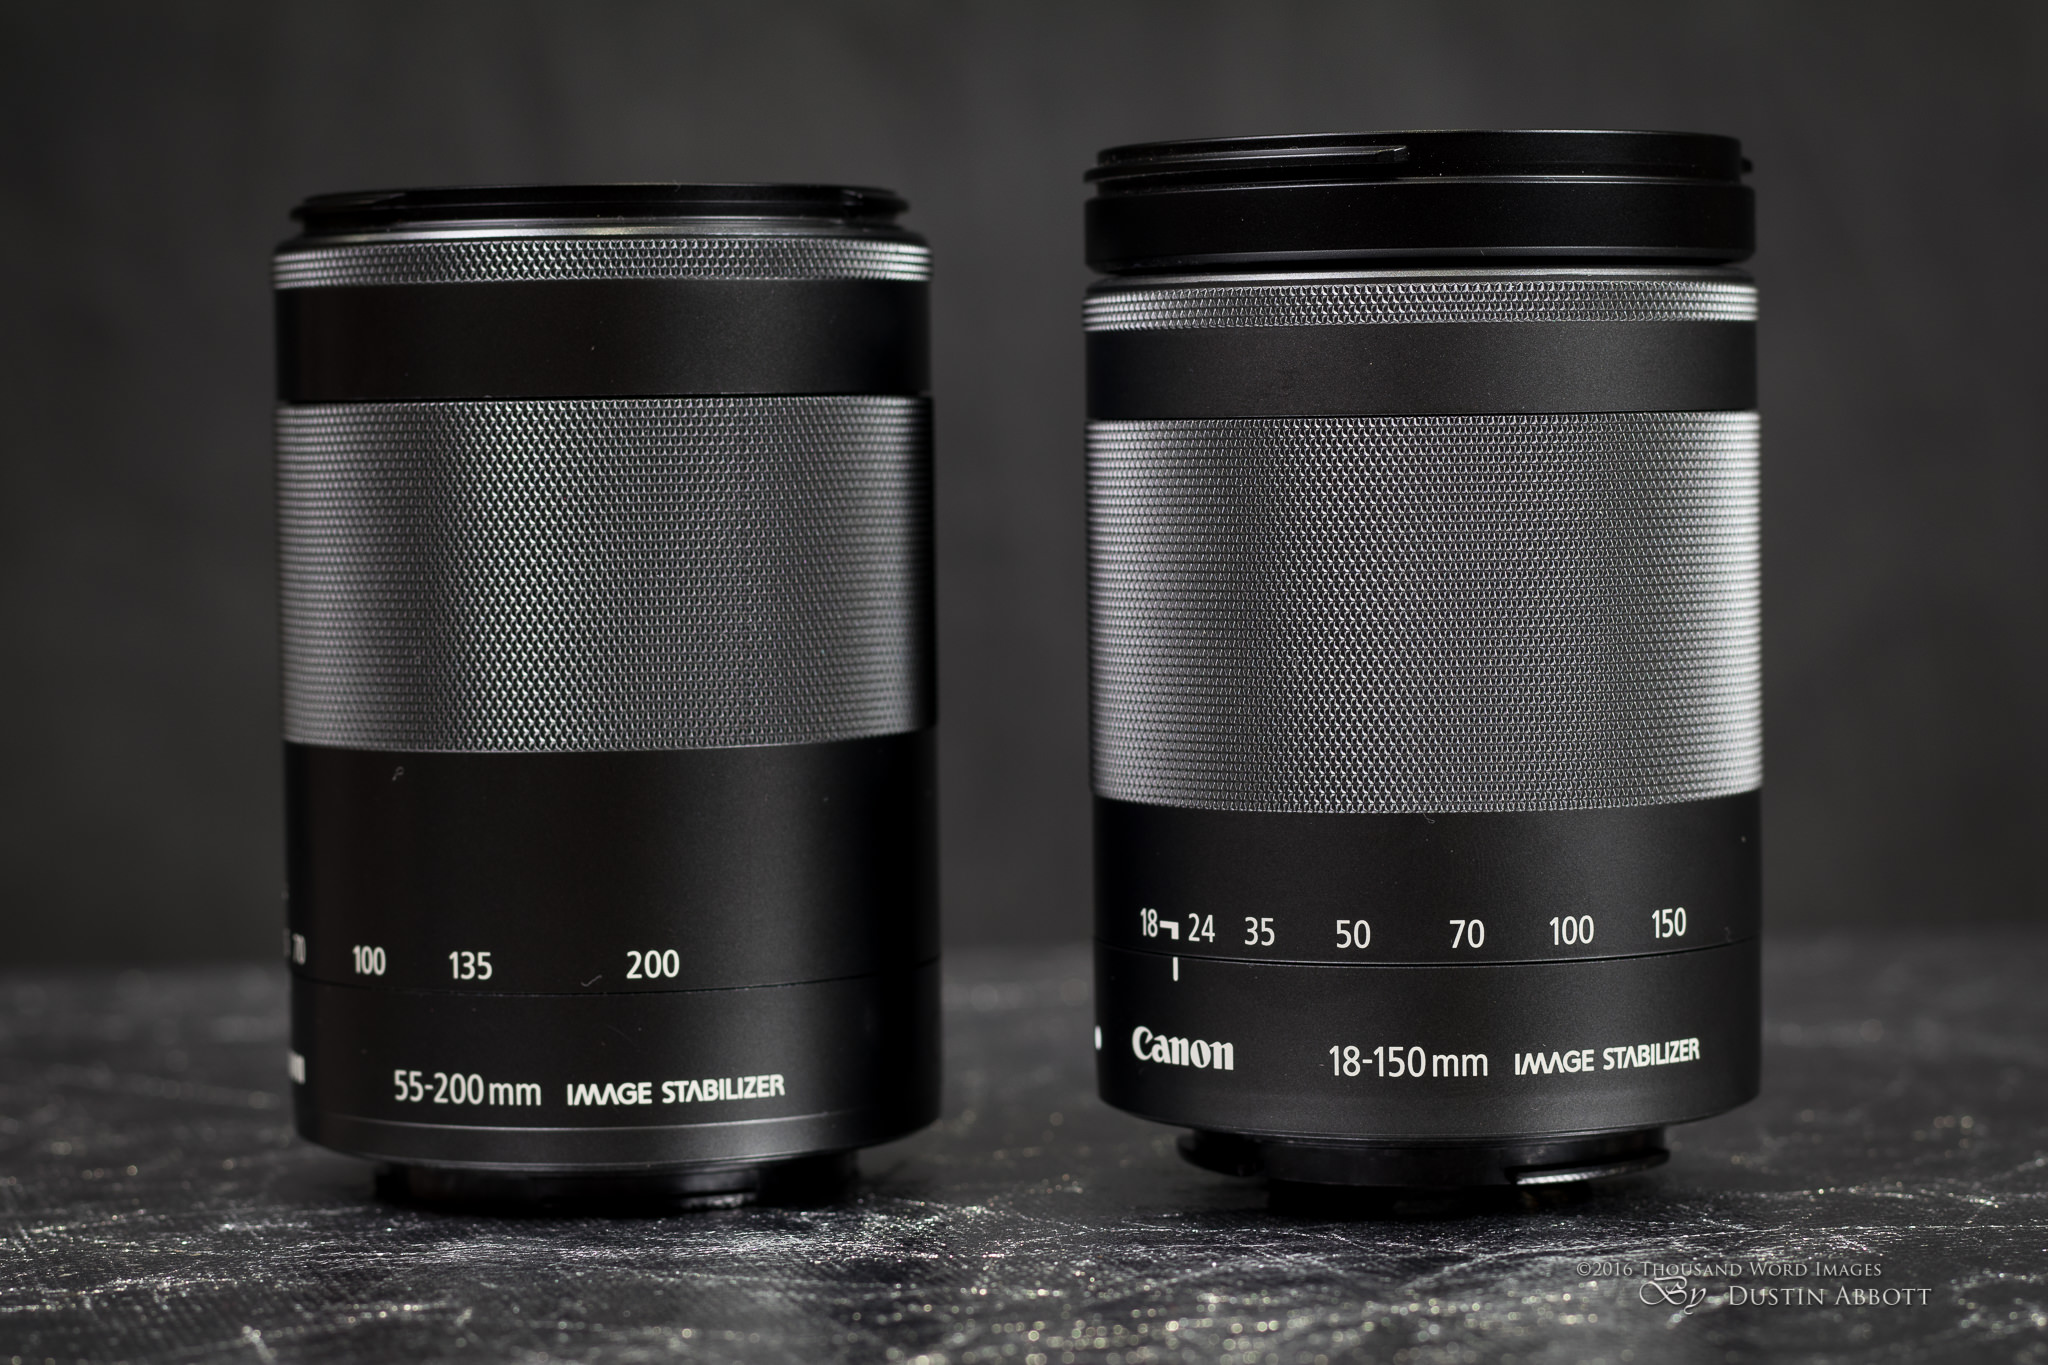 Canon Ef M 18 150mm F 35 63 Is Stm Review Eos M10 15 45mm White This Due To The 150 Having A Slightly Denser Optical Formula Both Have 17 Elements But They Are In 13 Groups Rather Than 11